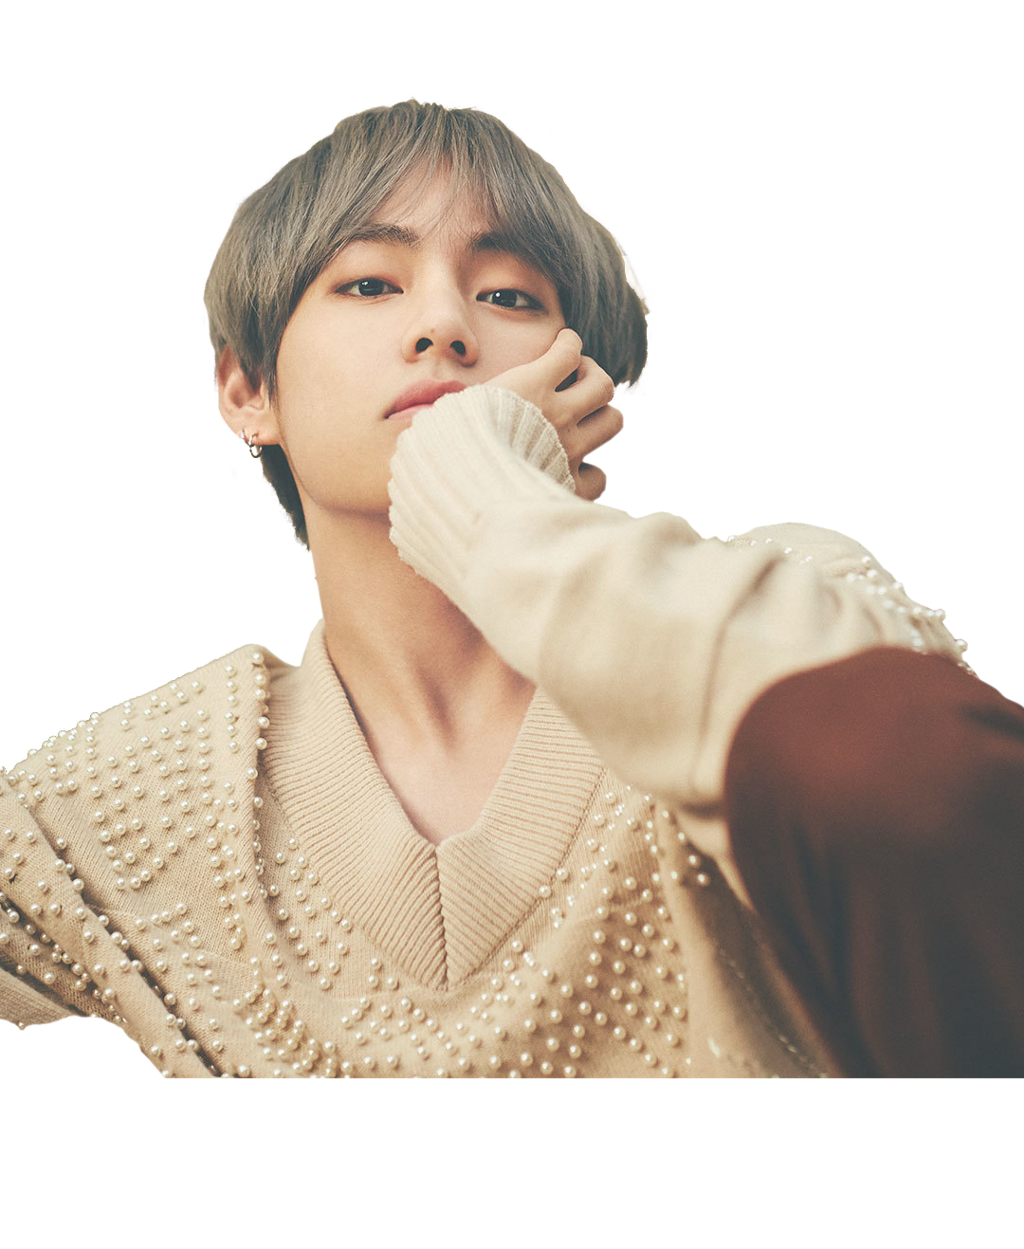 v bts render kim taehyung png clip art emotions and feelings chart clip art emotion faces sunglasses